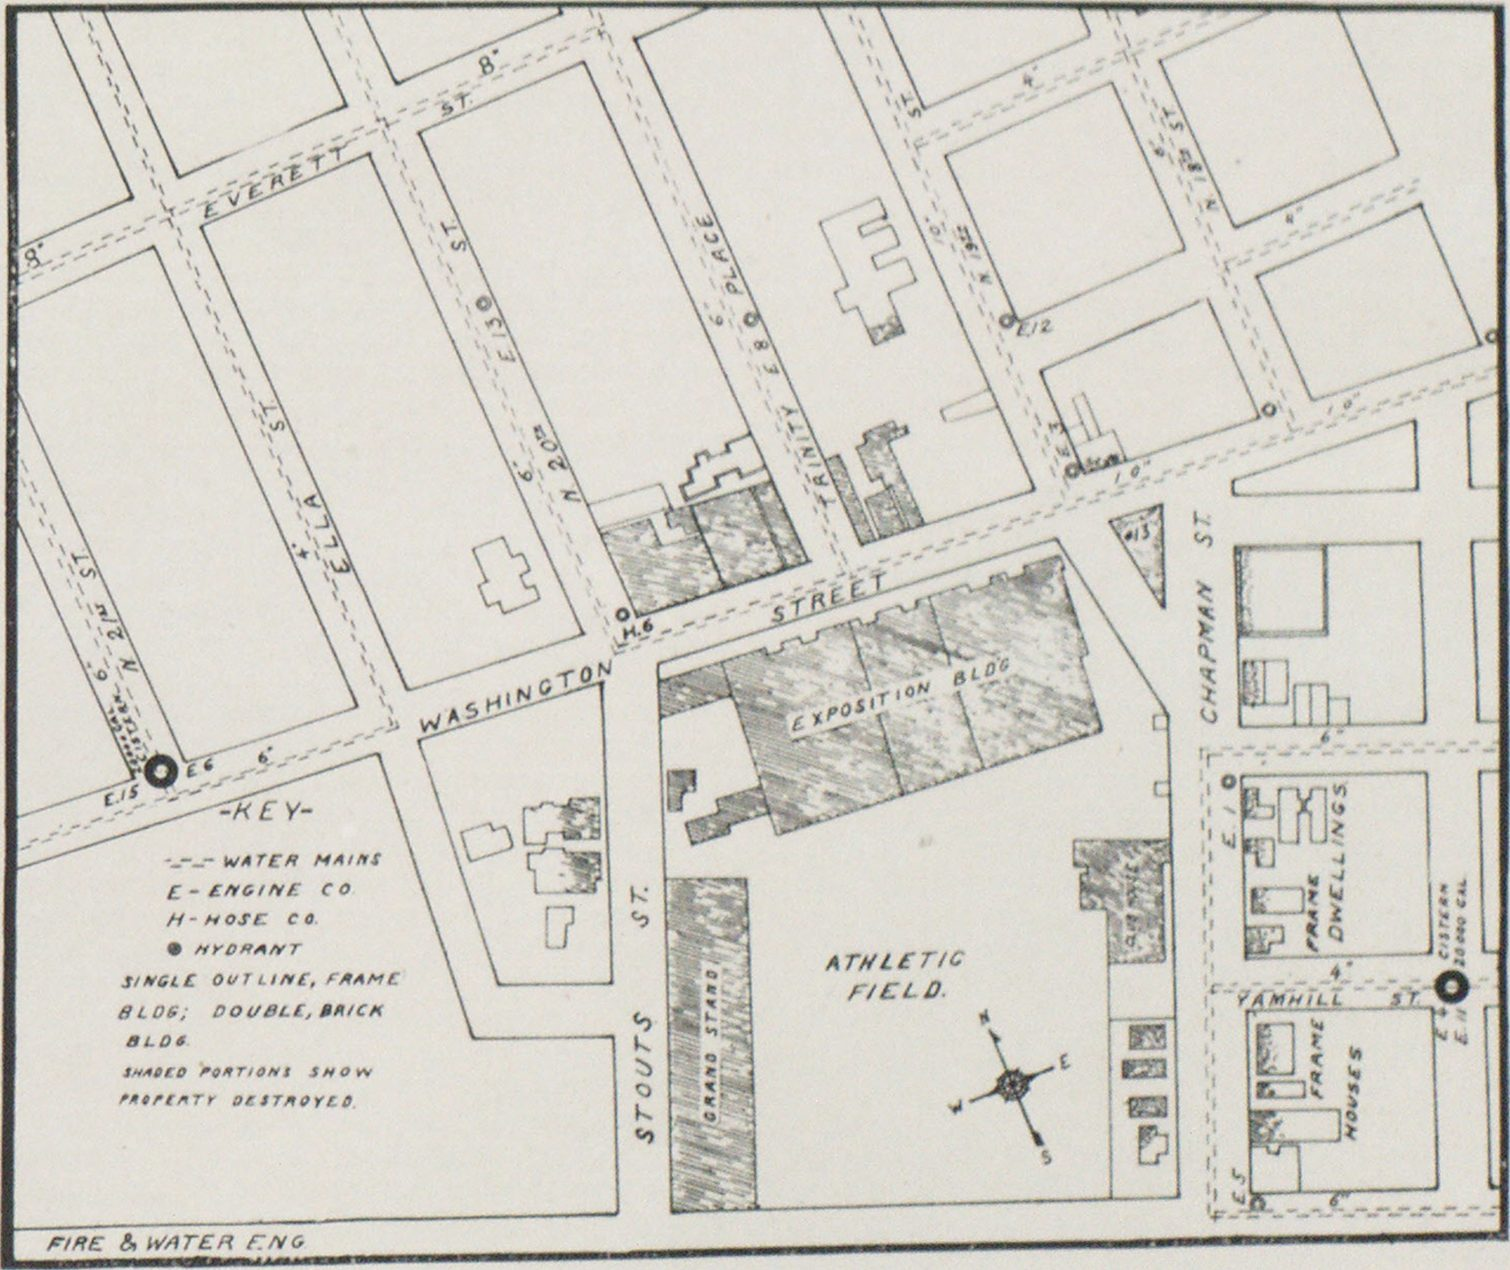 MAP OF PORTION OF PORTLAND, ORE., SHOWING LOCATION OF EXPOSITION BUILDING FIRE.